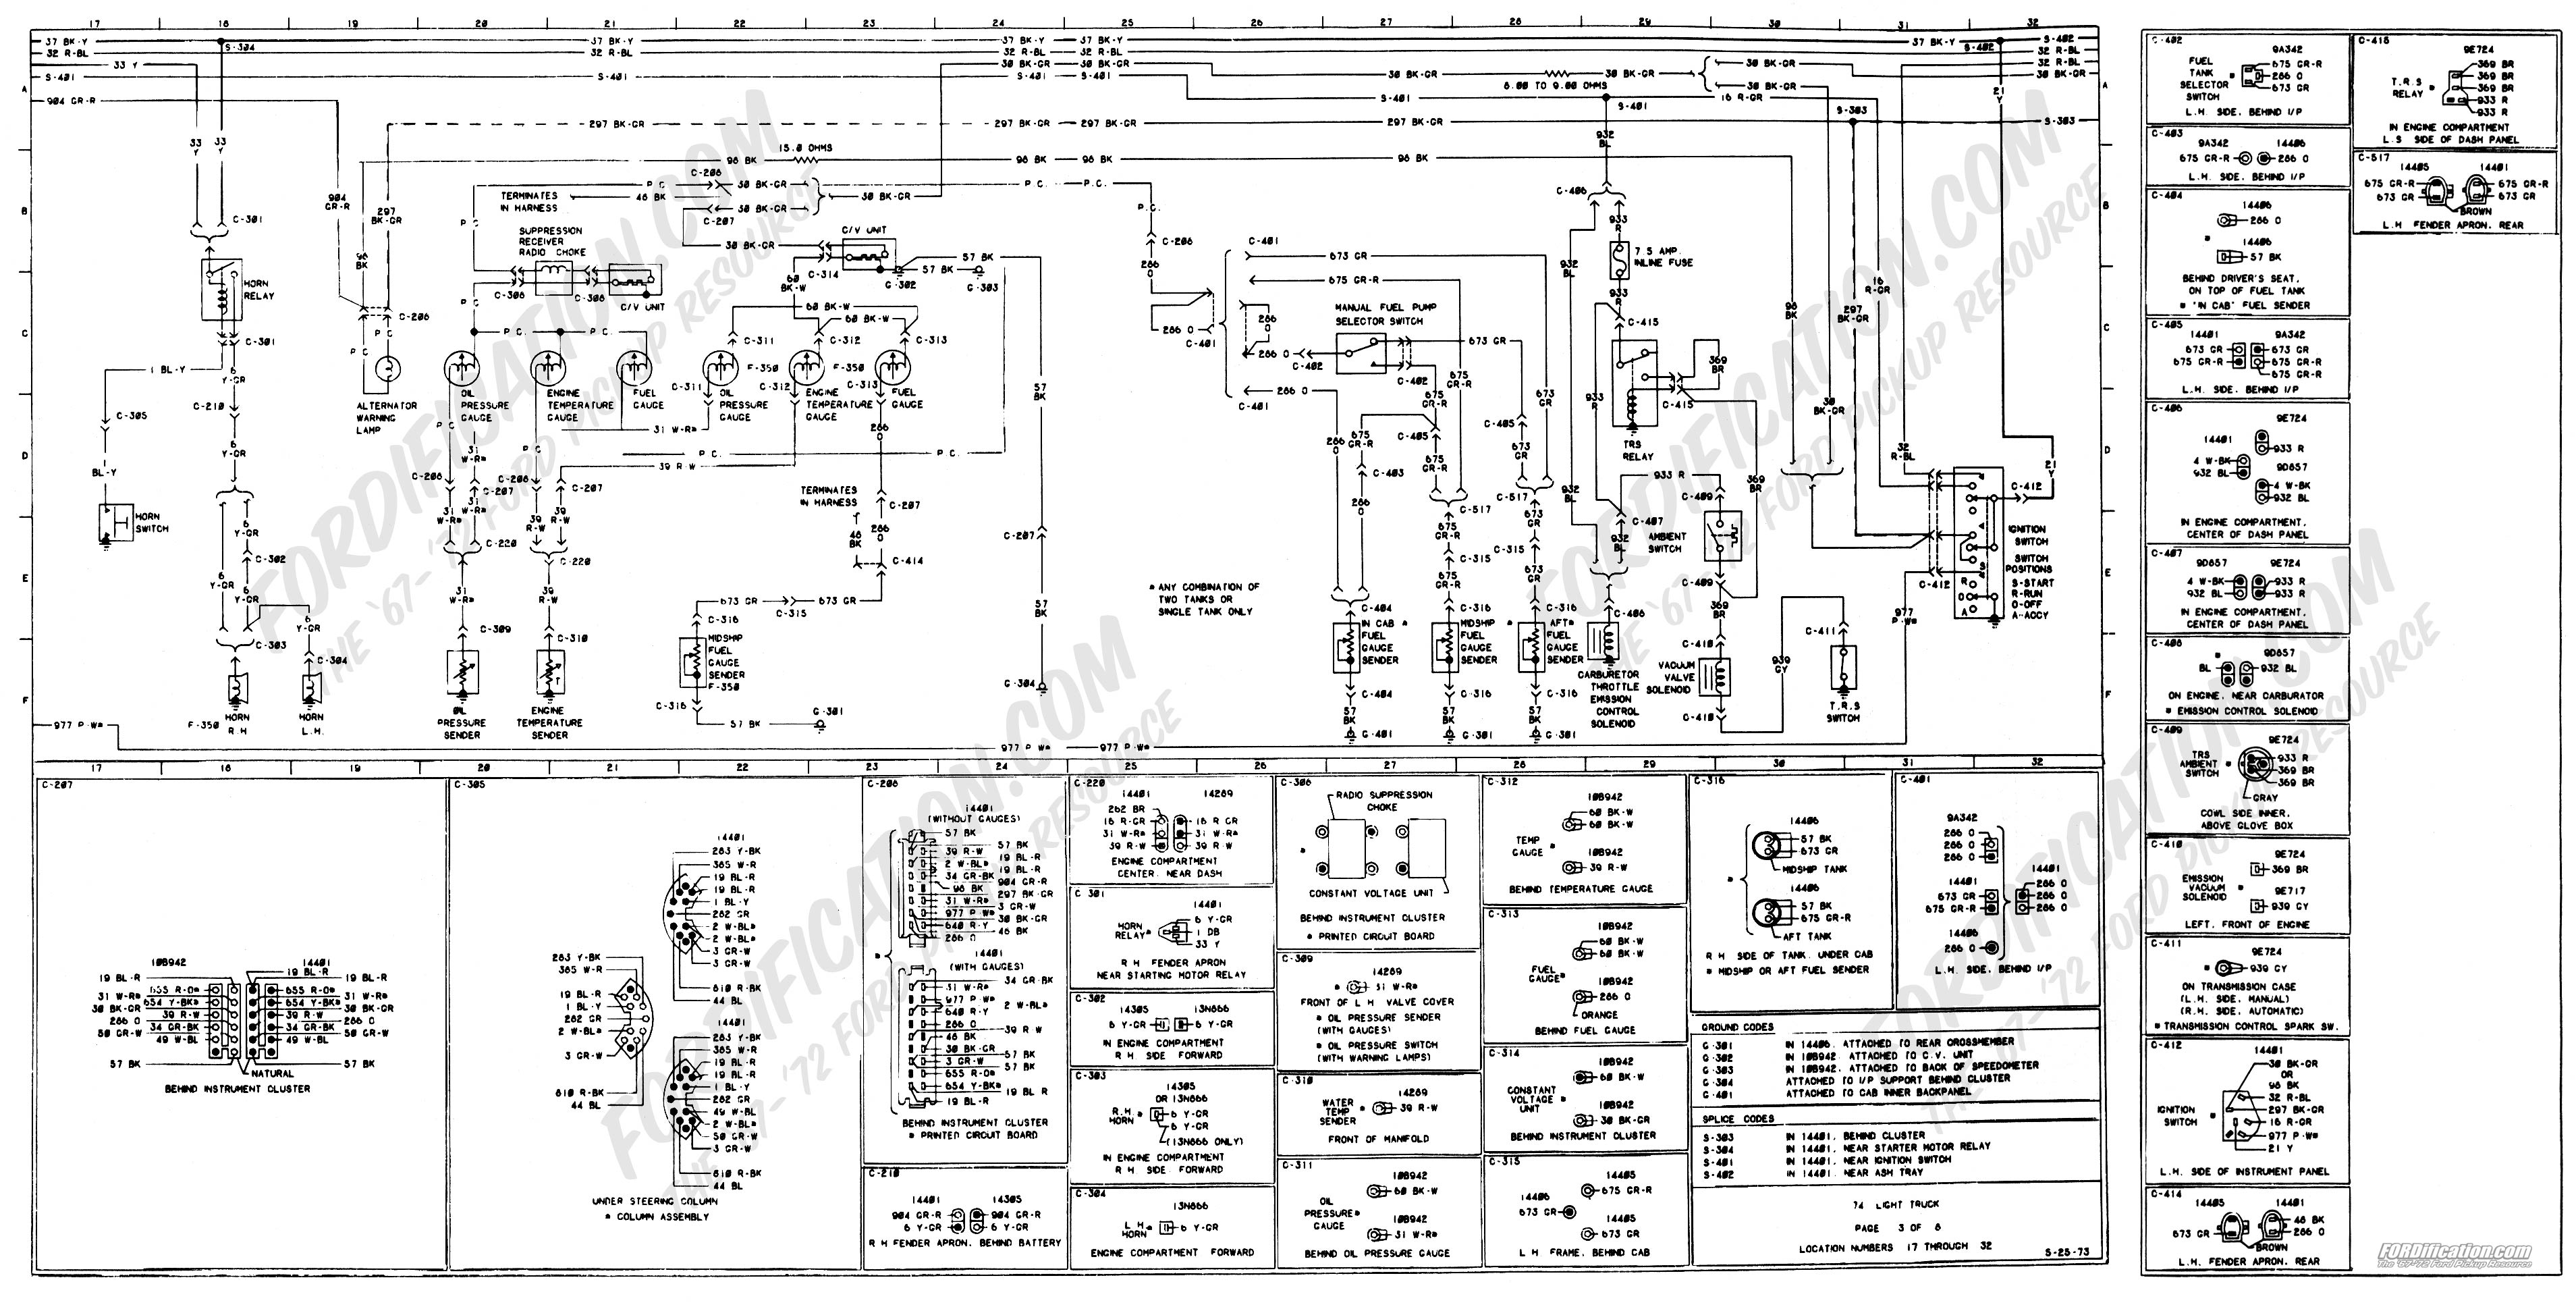 1973 1979 ford truck wiring diagrams schematics fordification net rh fordification net 1999 F250 Wiring Schematic for 4x4 1999 Ford F-250 Diesel